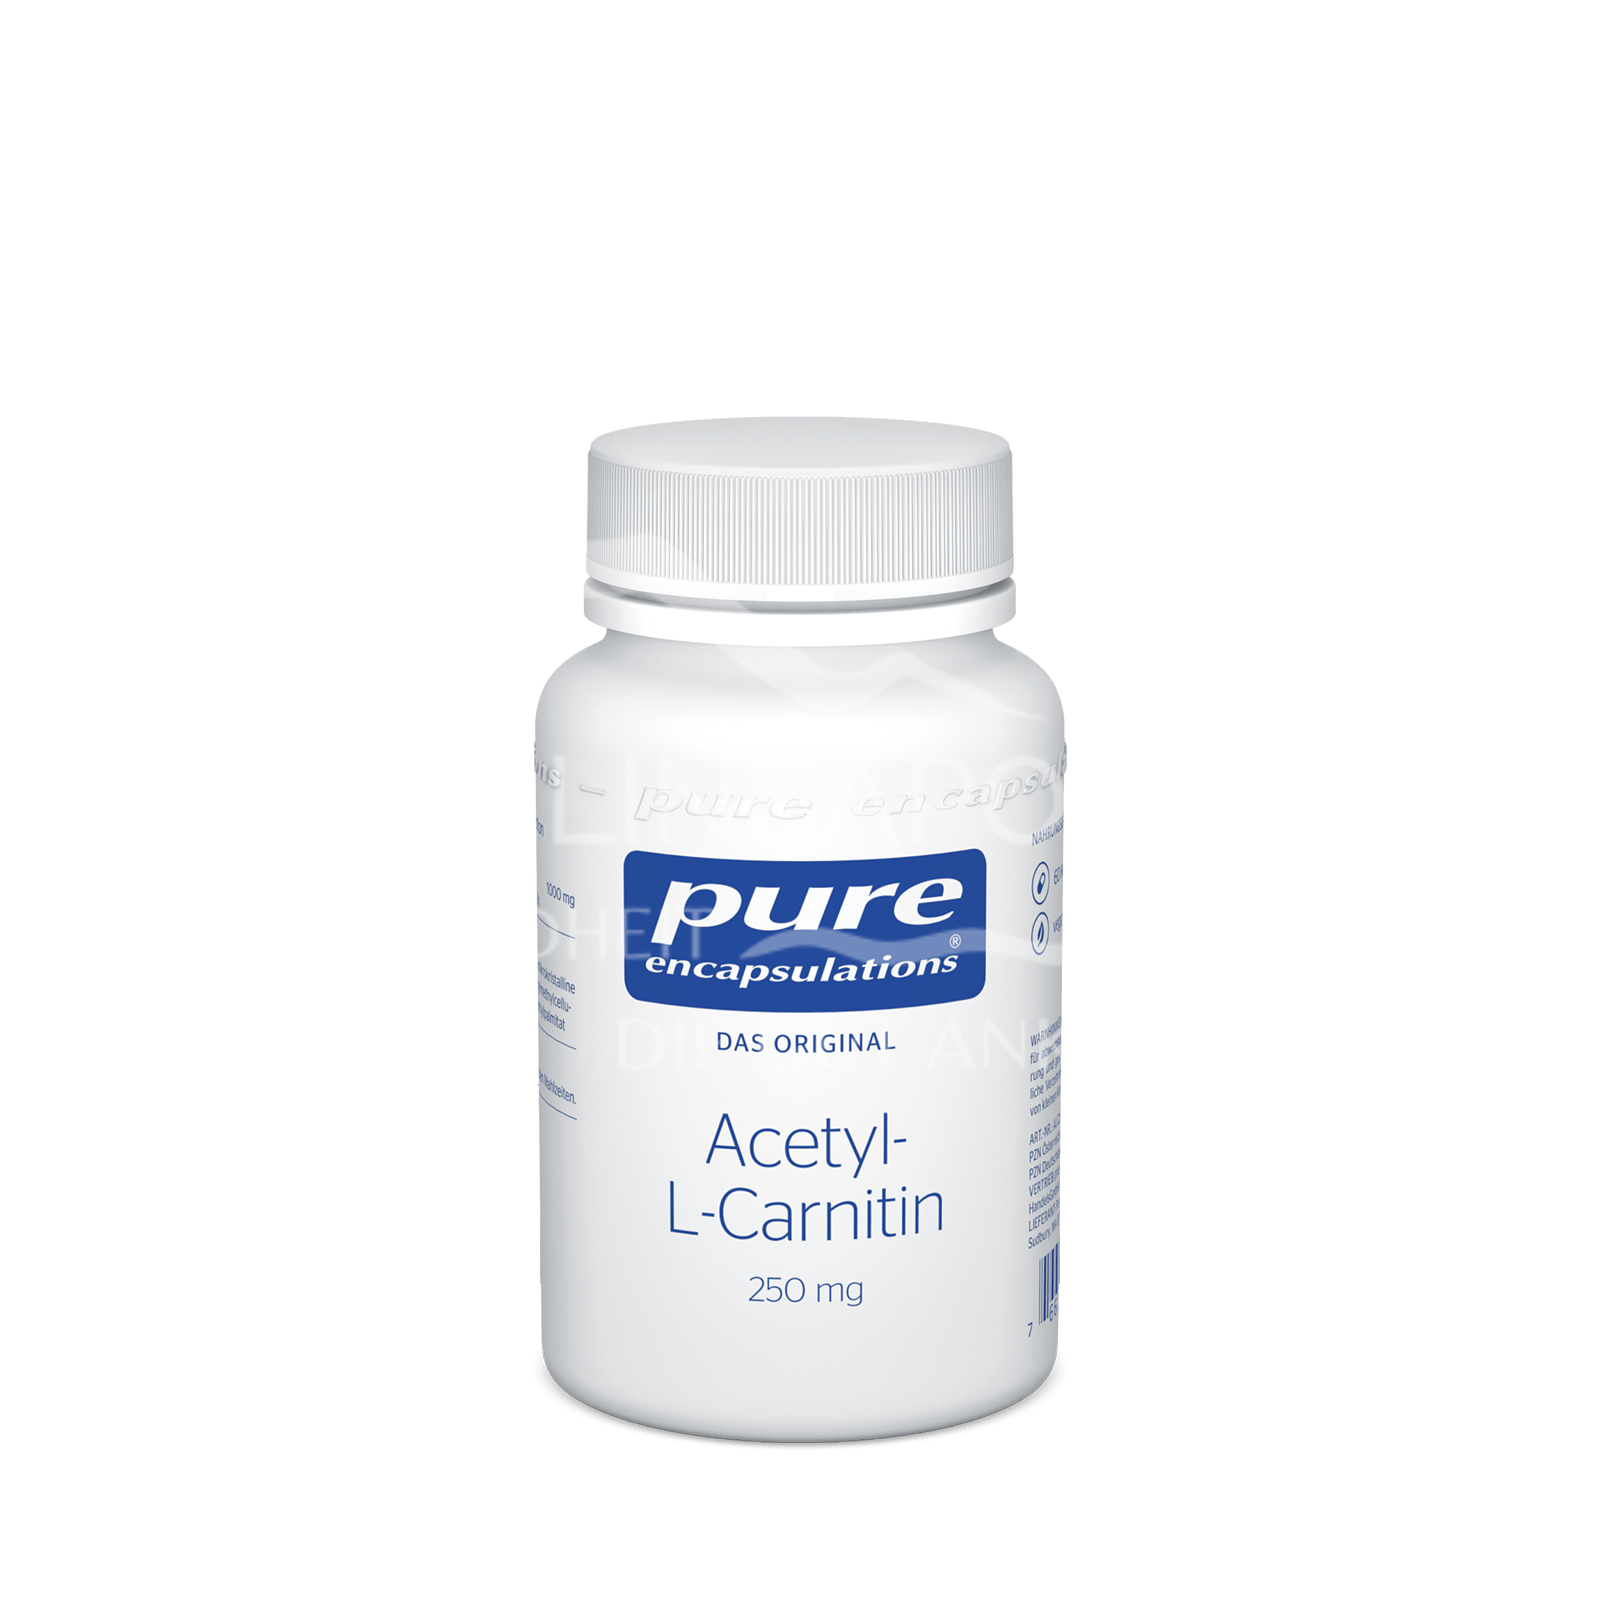 pure encapsulations® Acetyl-L-Carnitin 250 mg